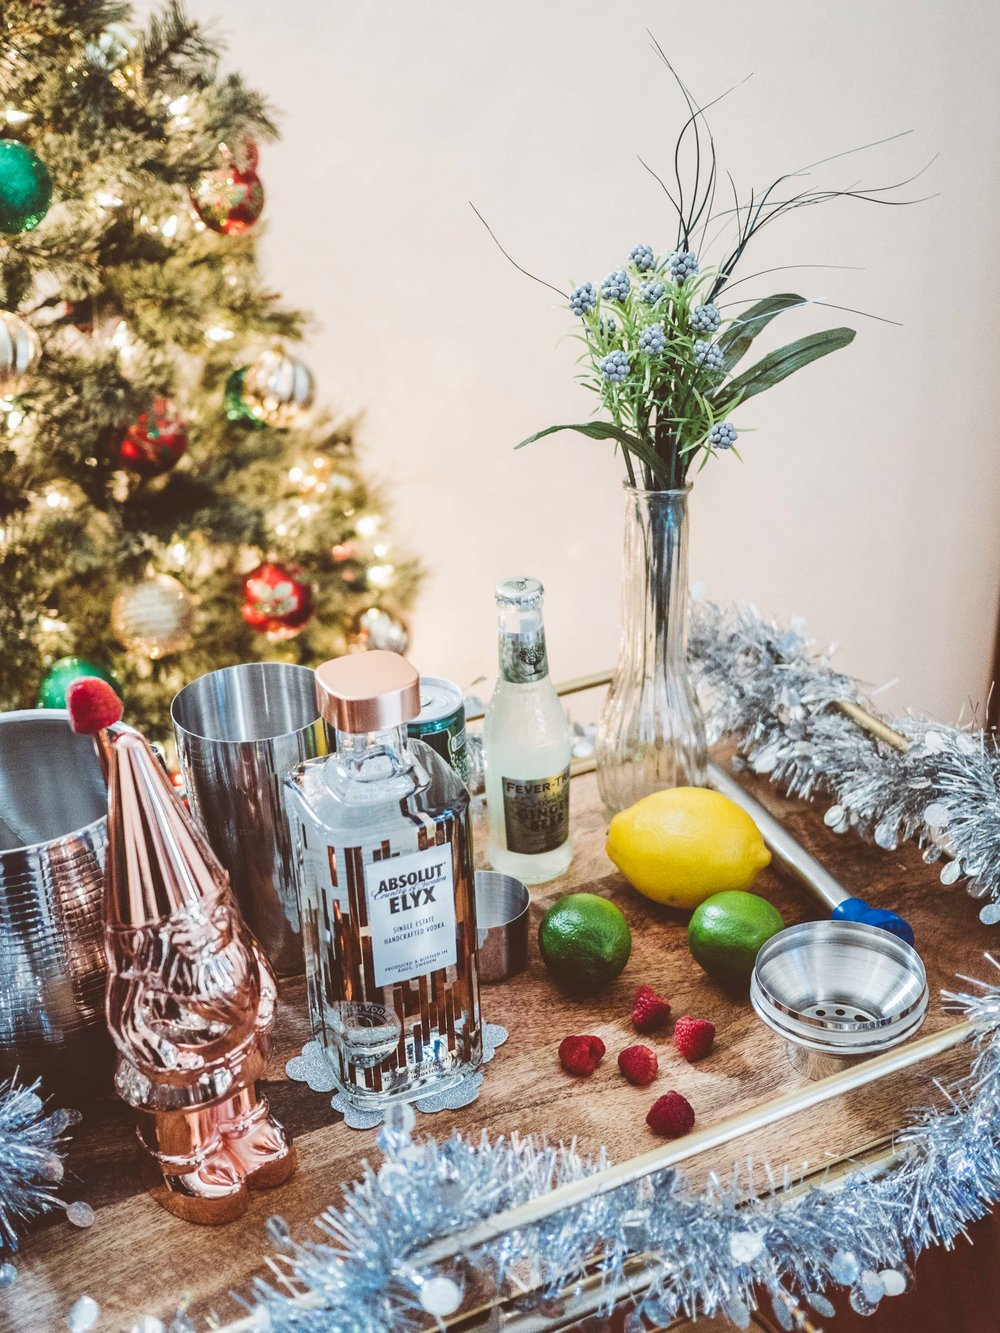 MYBELONGING-TOMMYLEI-THE-BEST-ABSOLUT-ELYX-COCKTAIL-BAR-CART-HOLIDAY-DRINK-RECIPES-44.jpg